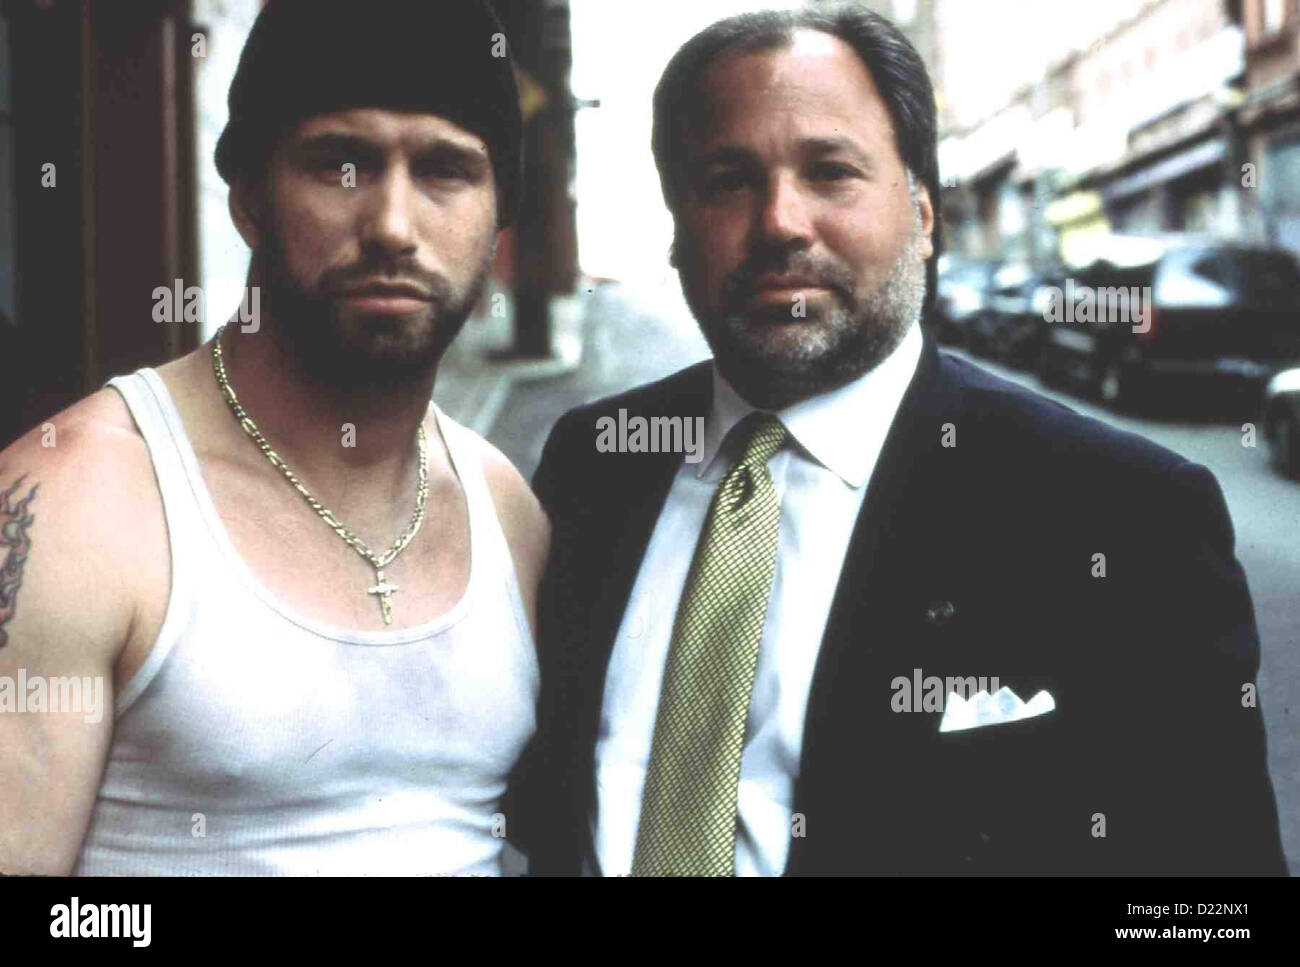 bo dietl campaignbo dietl mayor, bo dietl imdb, bo dietl goodfellas, bo dietl trump, bo dietl wiki, bo dietl twitter, bo dietl wife, bo dietl ancestry, bo dietl fox news, bo dietl rao's, bo dietl democrat or republican, bo dietl arby's, bo dietl political party, bo dietl movie, bo dietl associates, bo dietl daily show, bo dietl donald trump, bo dietl subway commercial, bo dietl campaign, bo dietl facebook